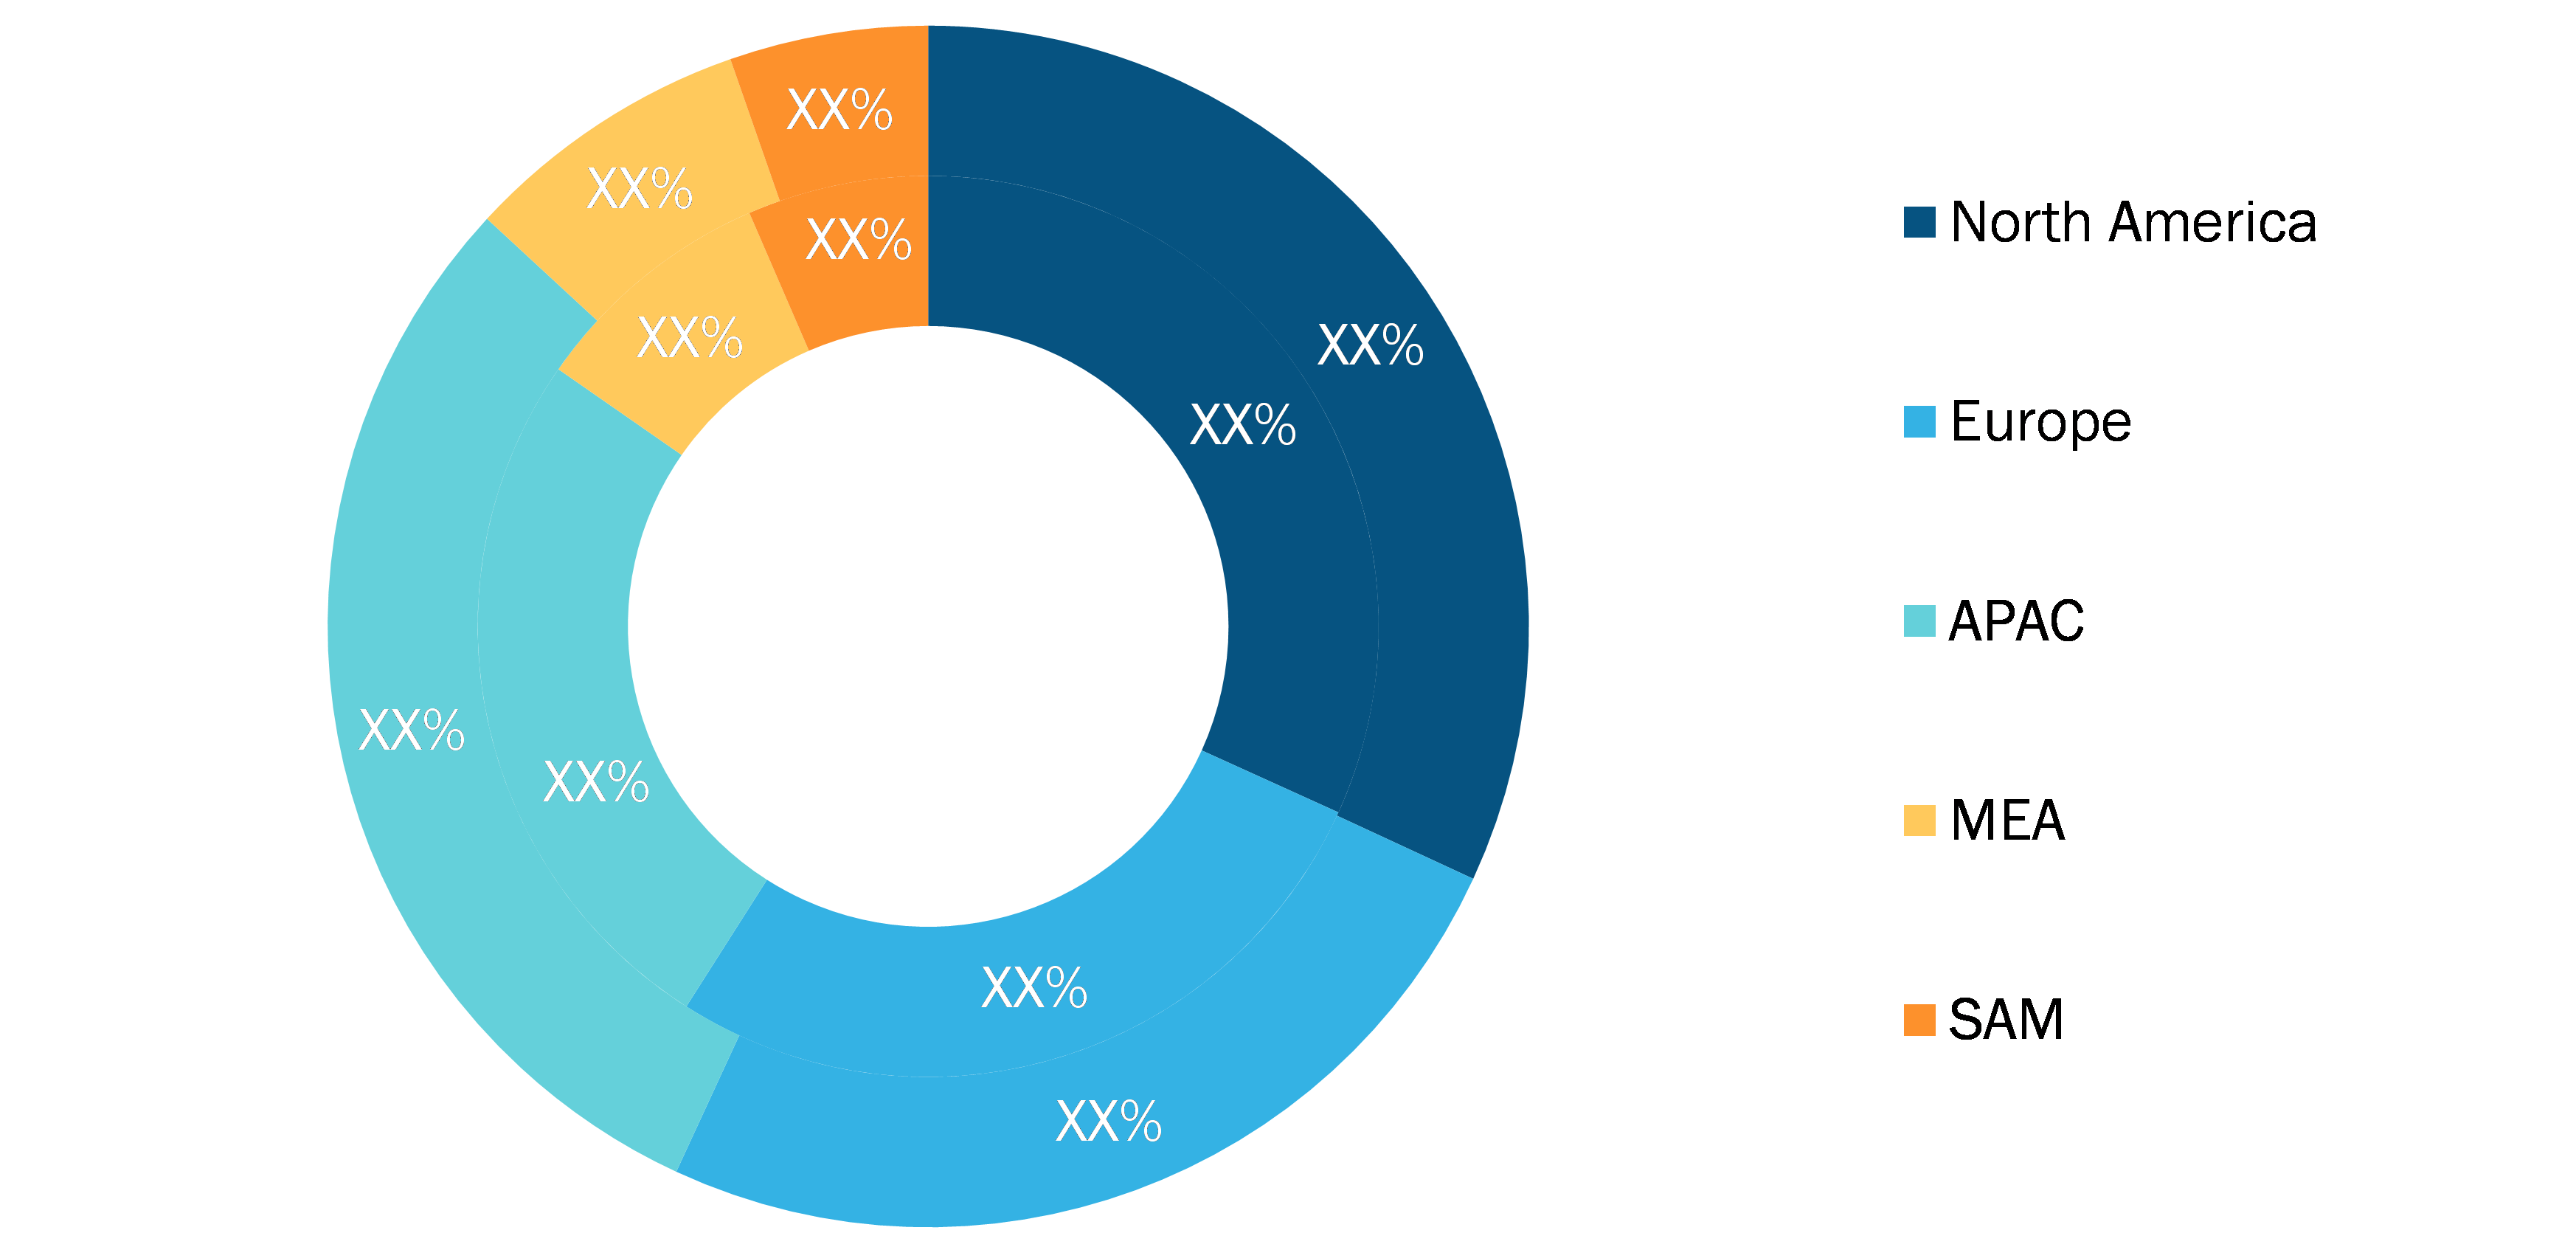 Retail Core Banking Systems Market - Geographic Breakdown, 2019